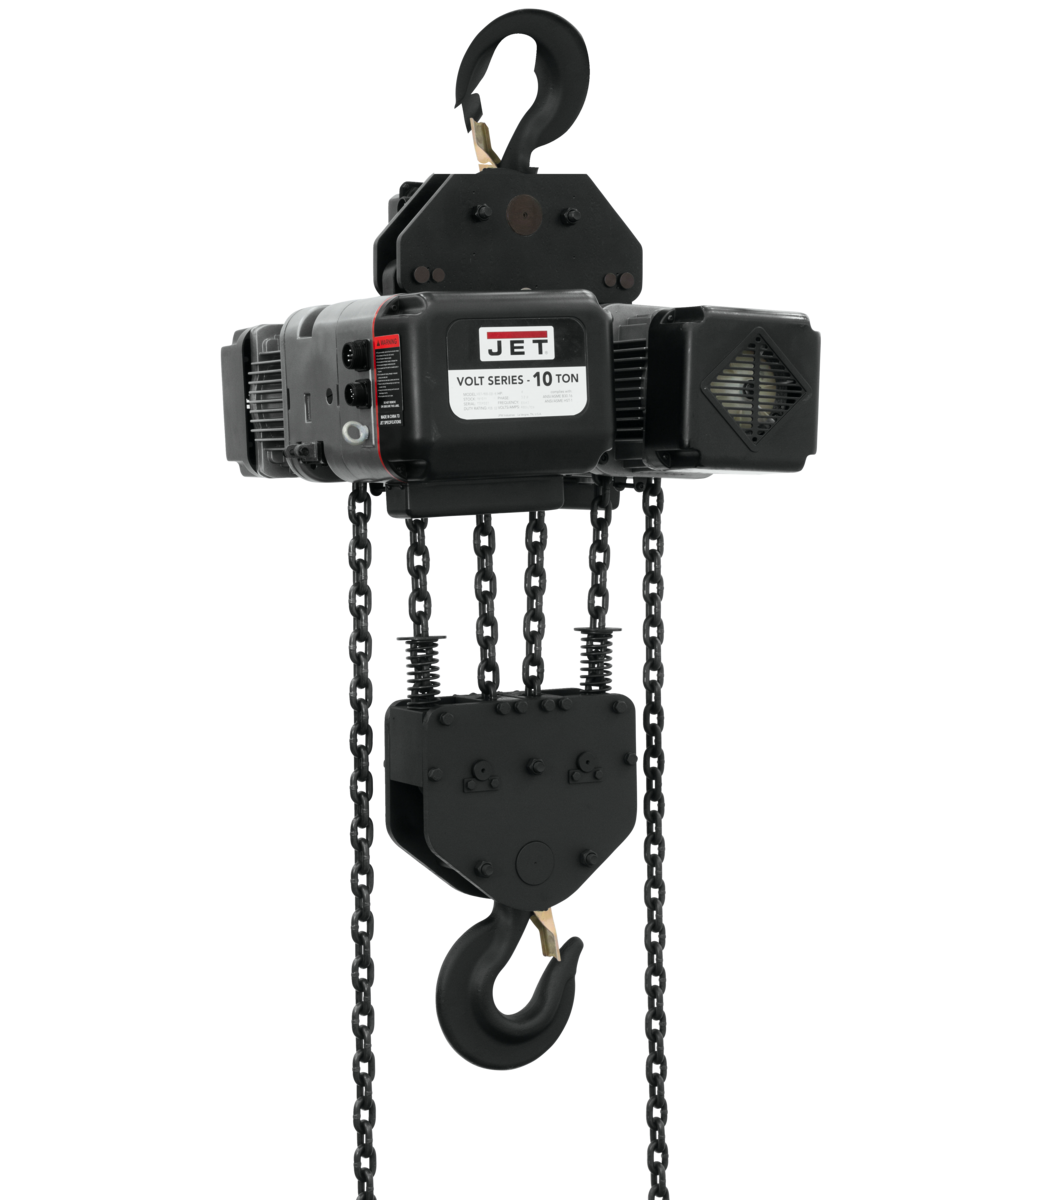 VOLT 10T VARIABLE-SPEED ELECTRIC HOIST  3PH 230V 30' LIFT